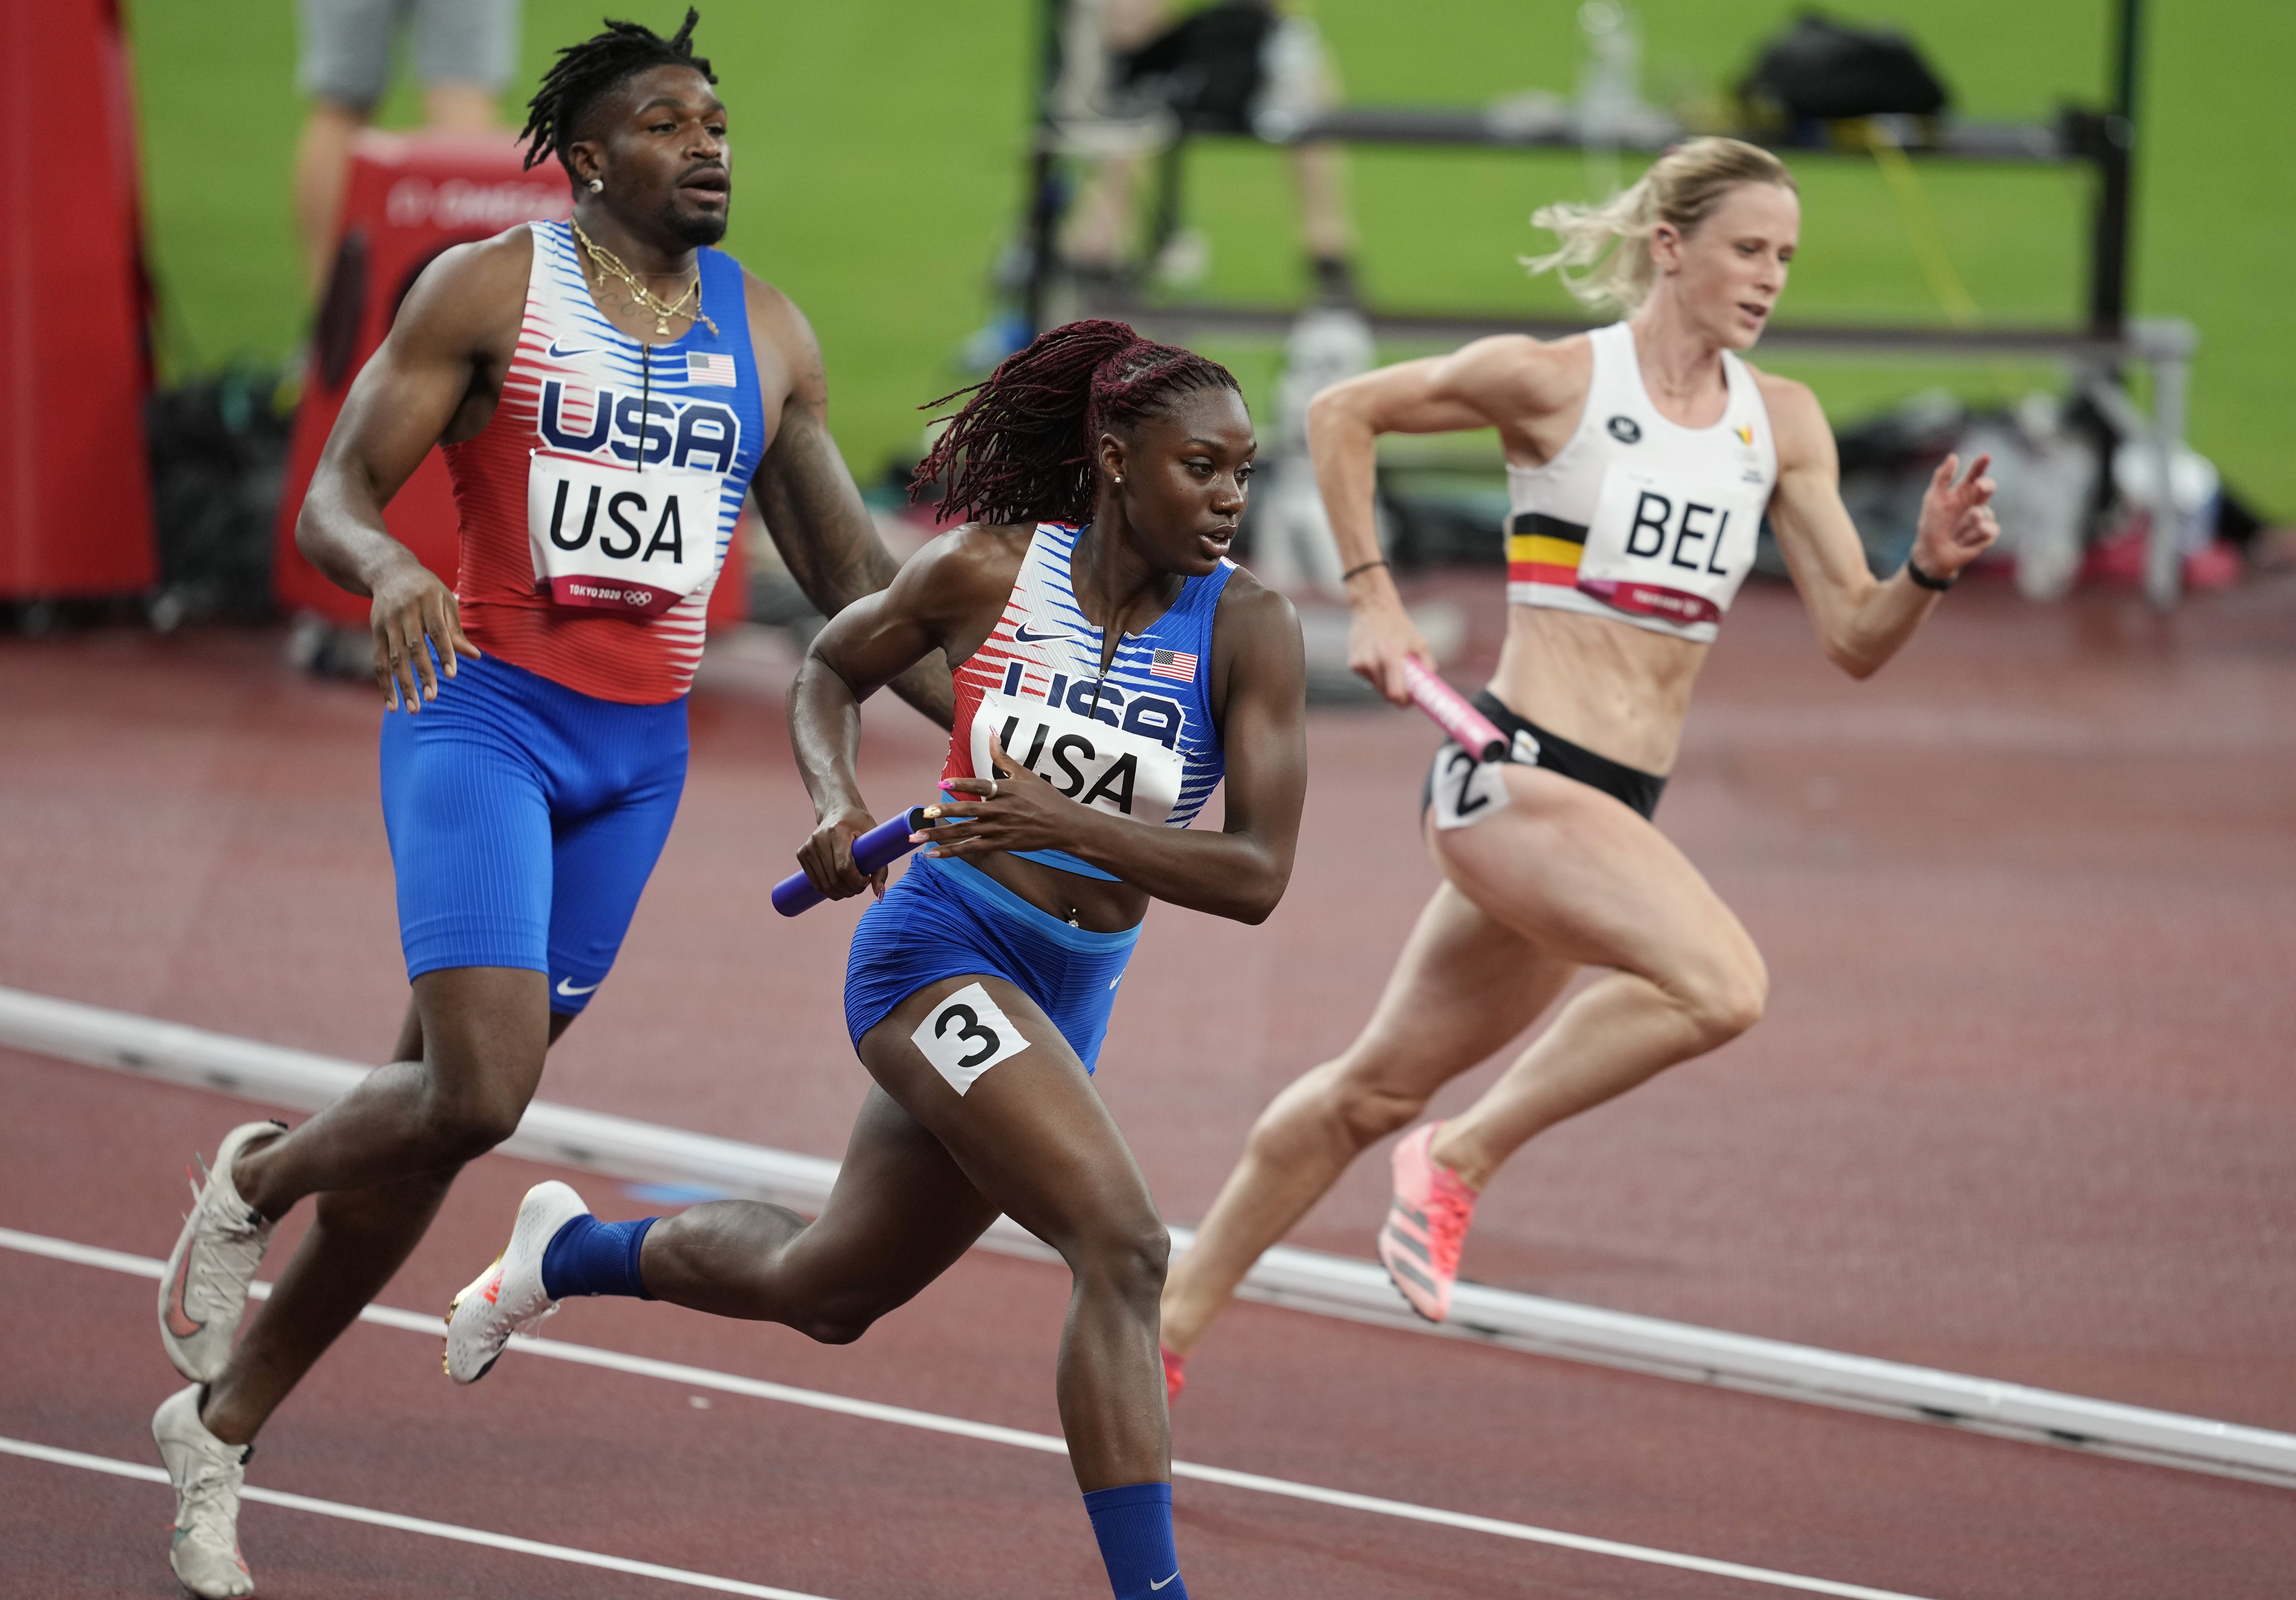 Jul 30, 2021; Tokyo, Japan; Lynna Irby (USA) competes in the 4x400 relay mixed qualification round 1 heat 1during the Tokyo 2020 Olympic Summer Games at Olympic Stadium. Mandatory Credit: Andrew Nelles-USA TODAY Sports